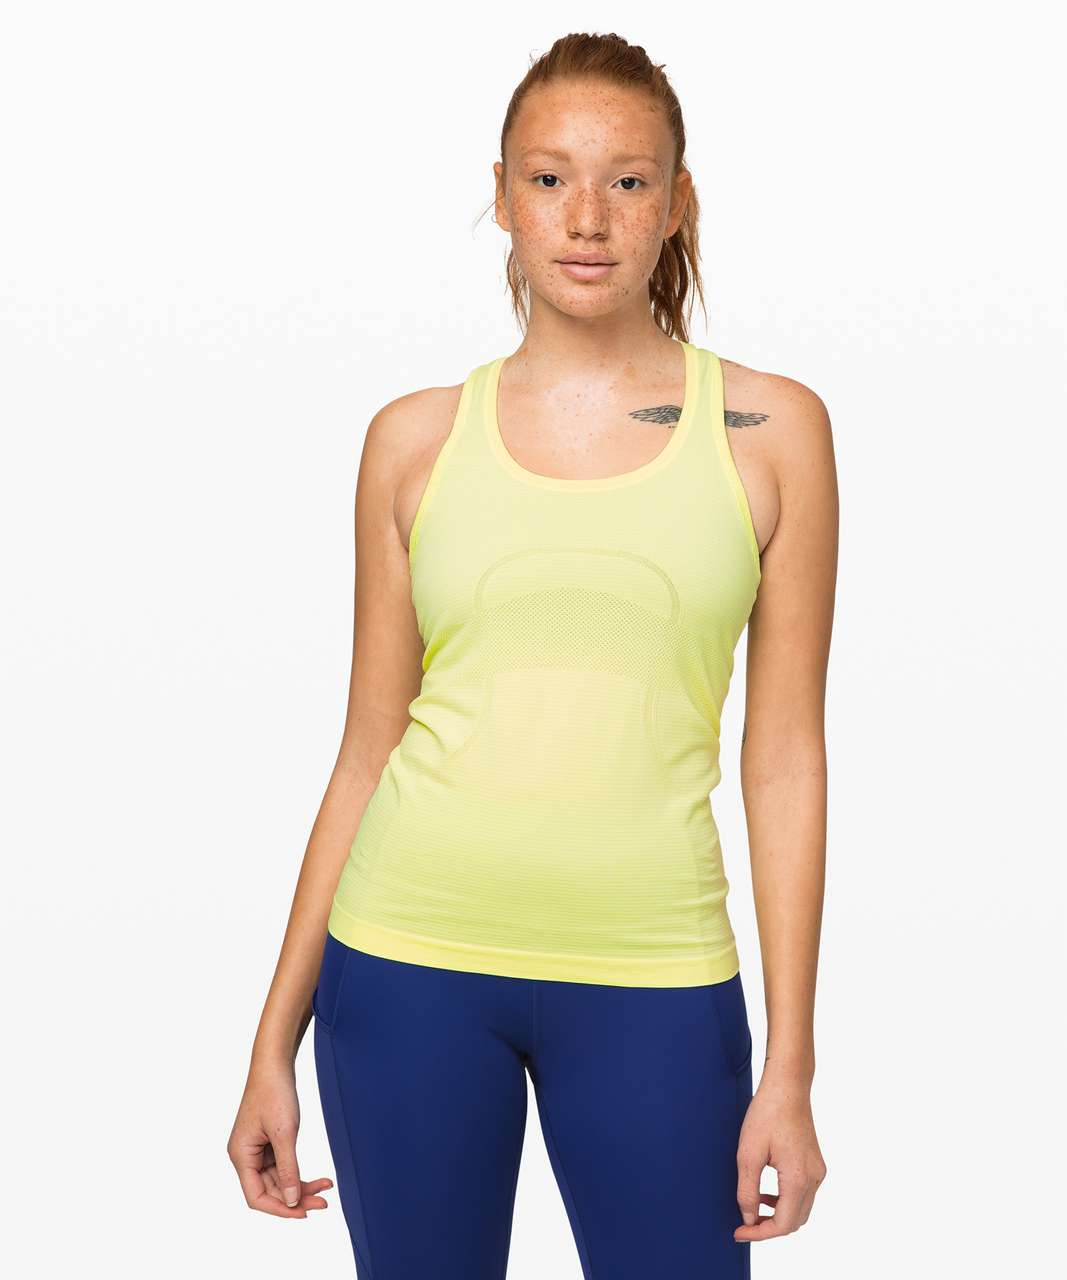 Lululemon Swiftly Tech Racerback - Florid Flash / White